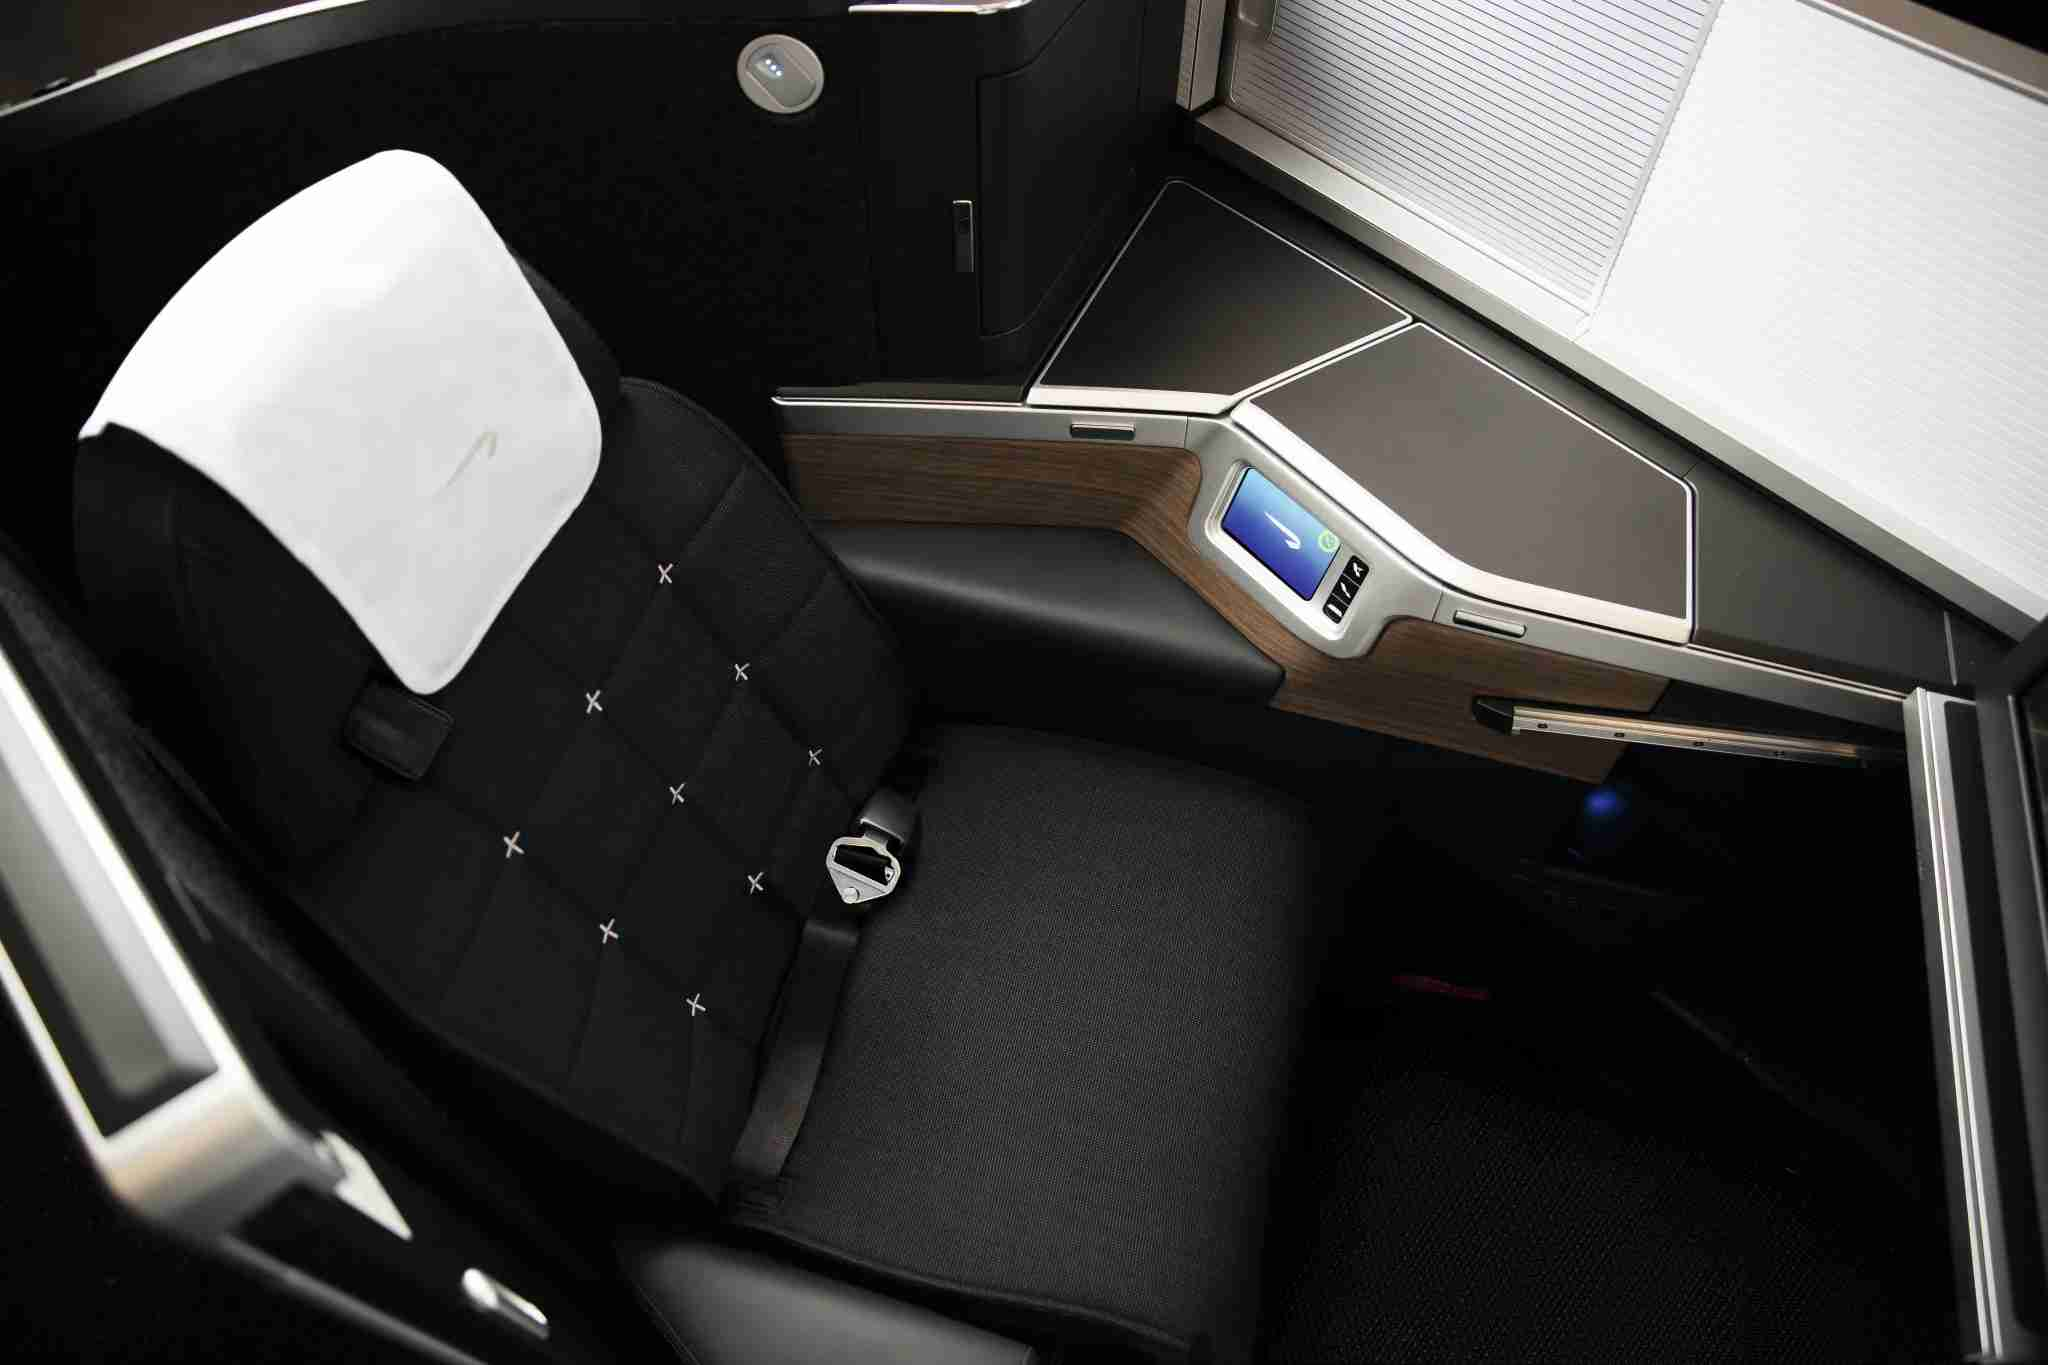 **STRICT EMBARGO** LONDON, UK: New Club World seat developed through Project Vector, photographed on 10 Decemeber 2018 (Picture by Nick Morrish/British Airways)